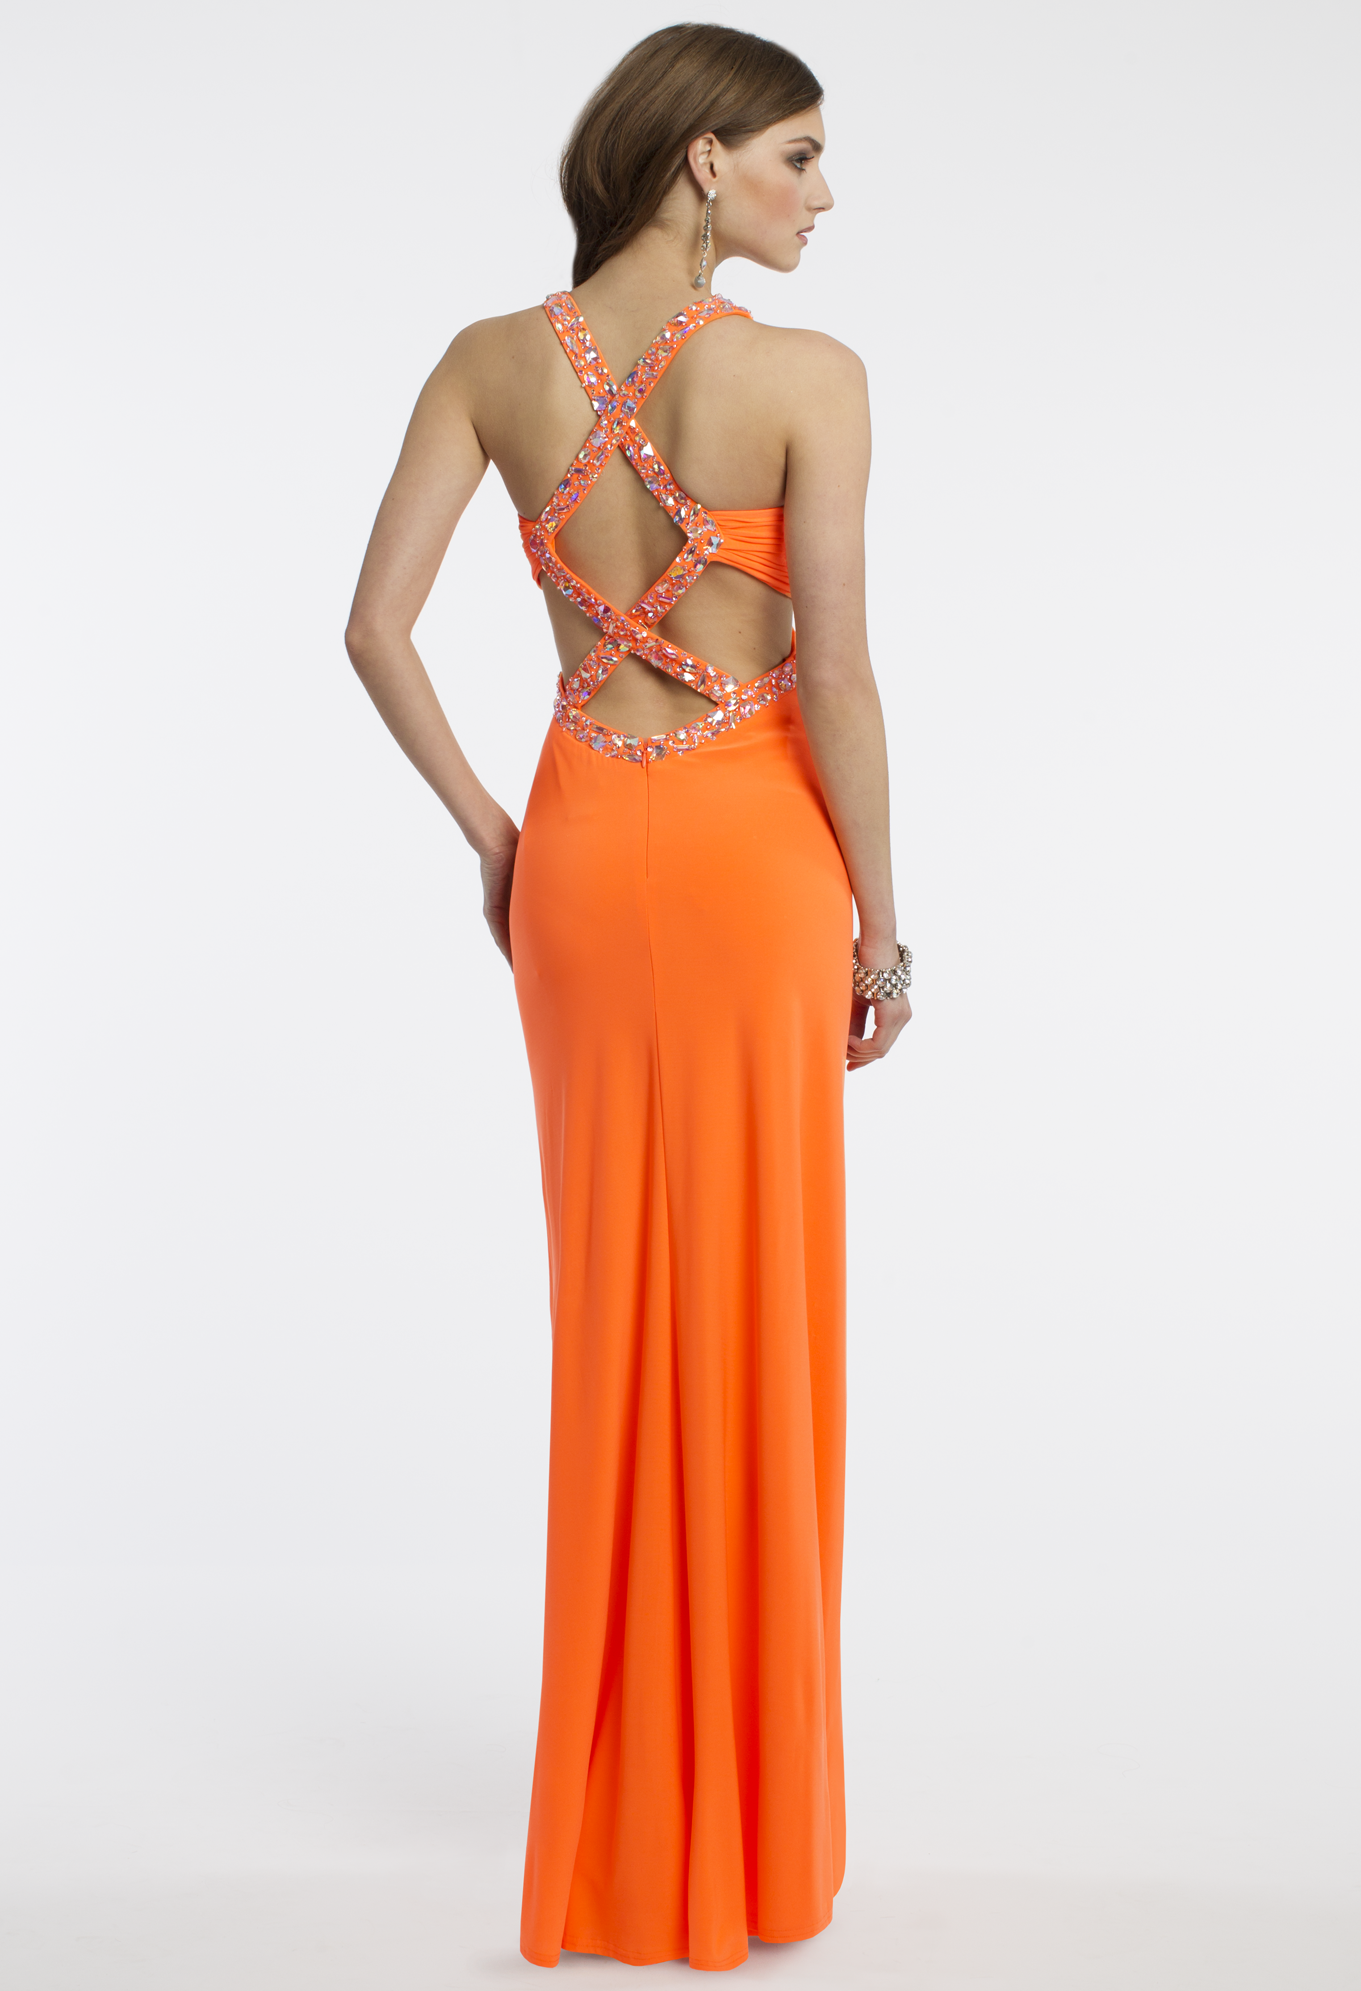 Camille La Vie Jersey Prom Dress with Beading in Orange | PROM ...